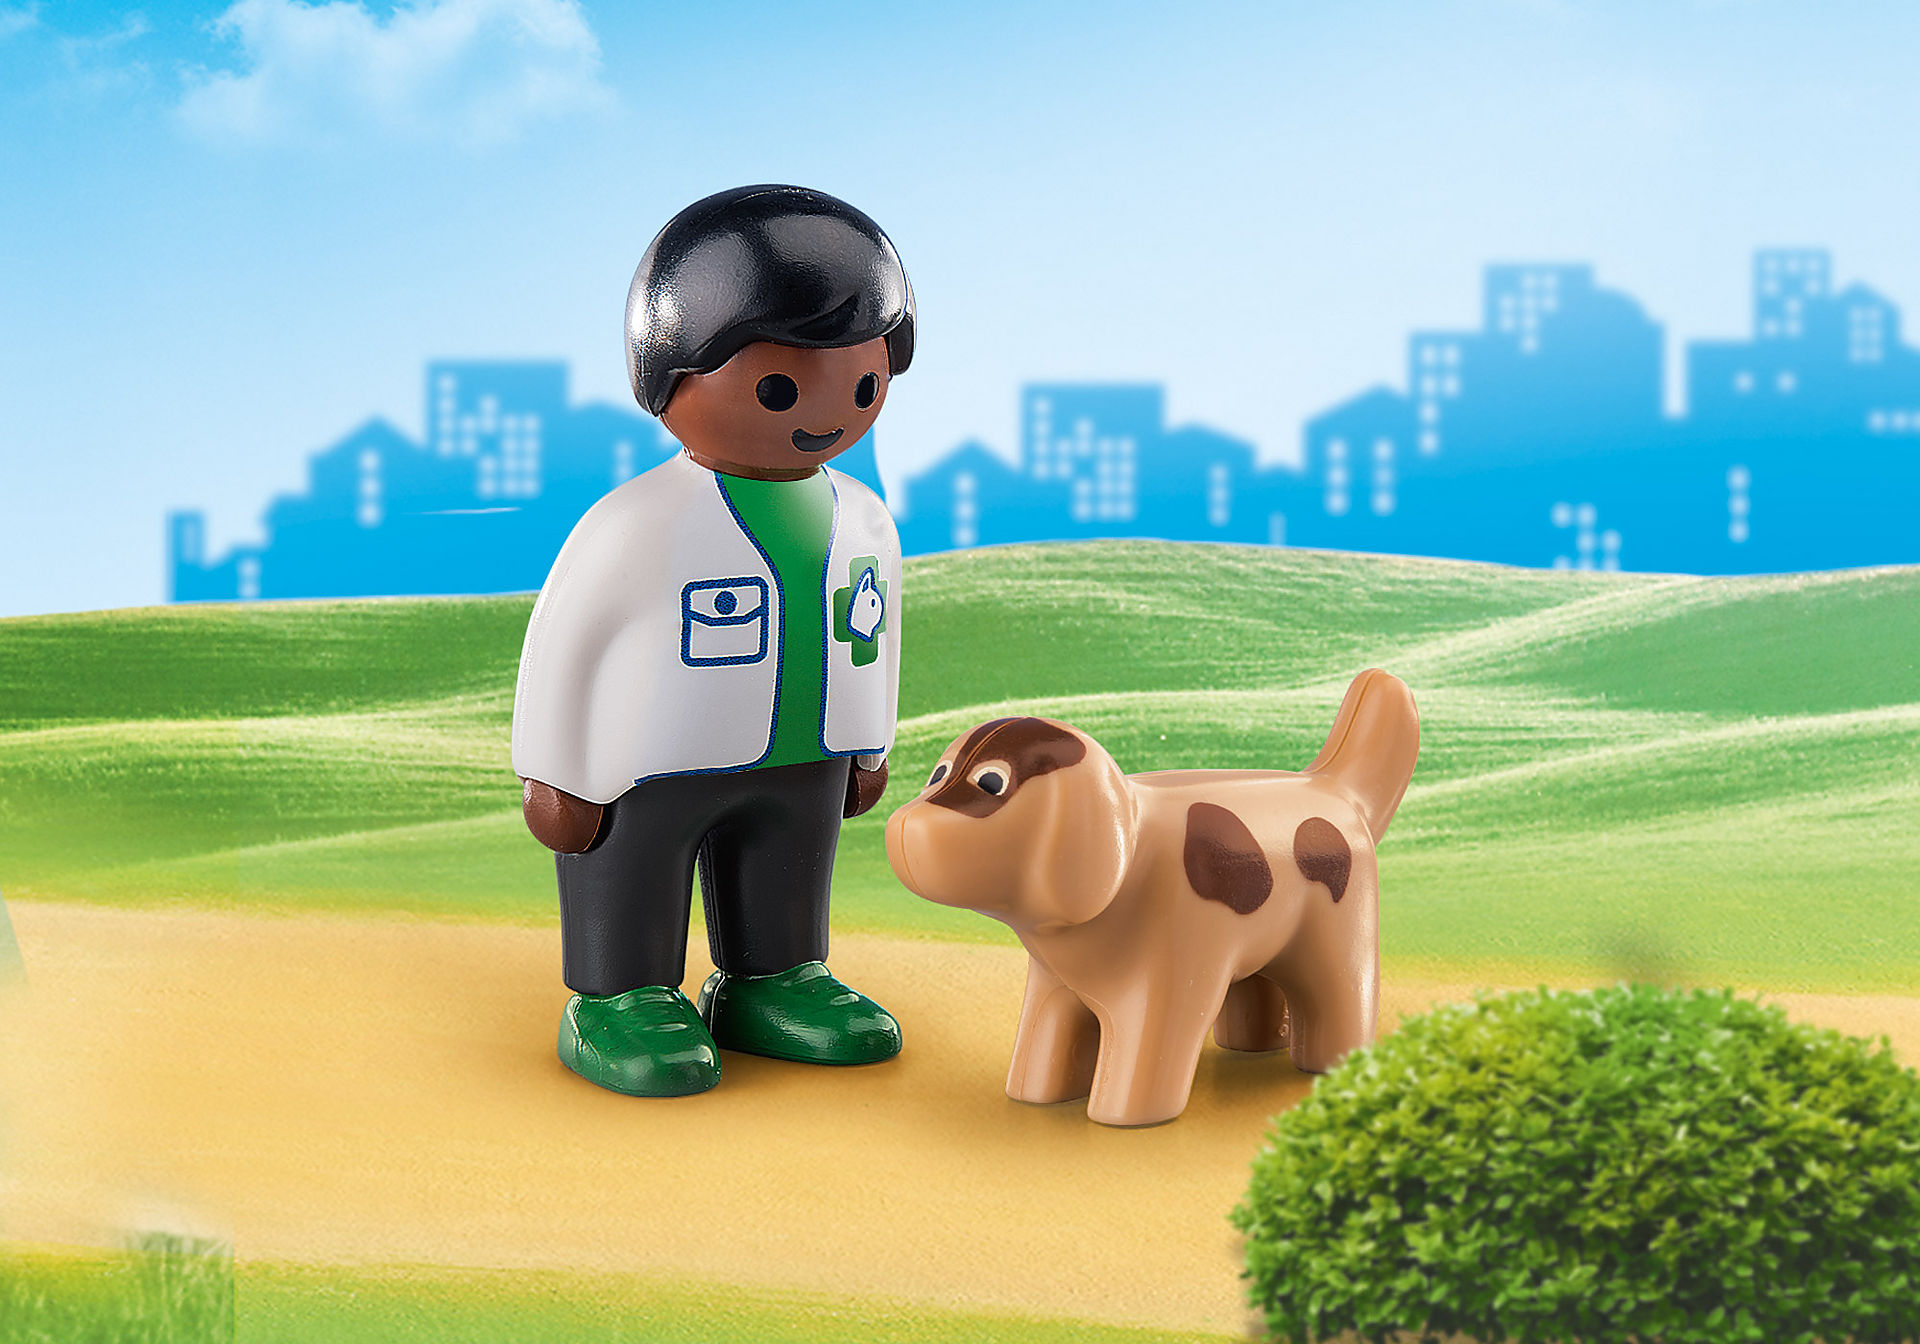 70407 Vet with Dog zoom image1